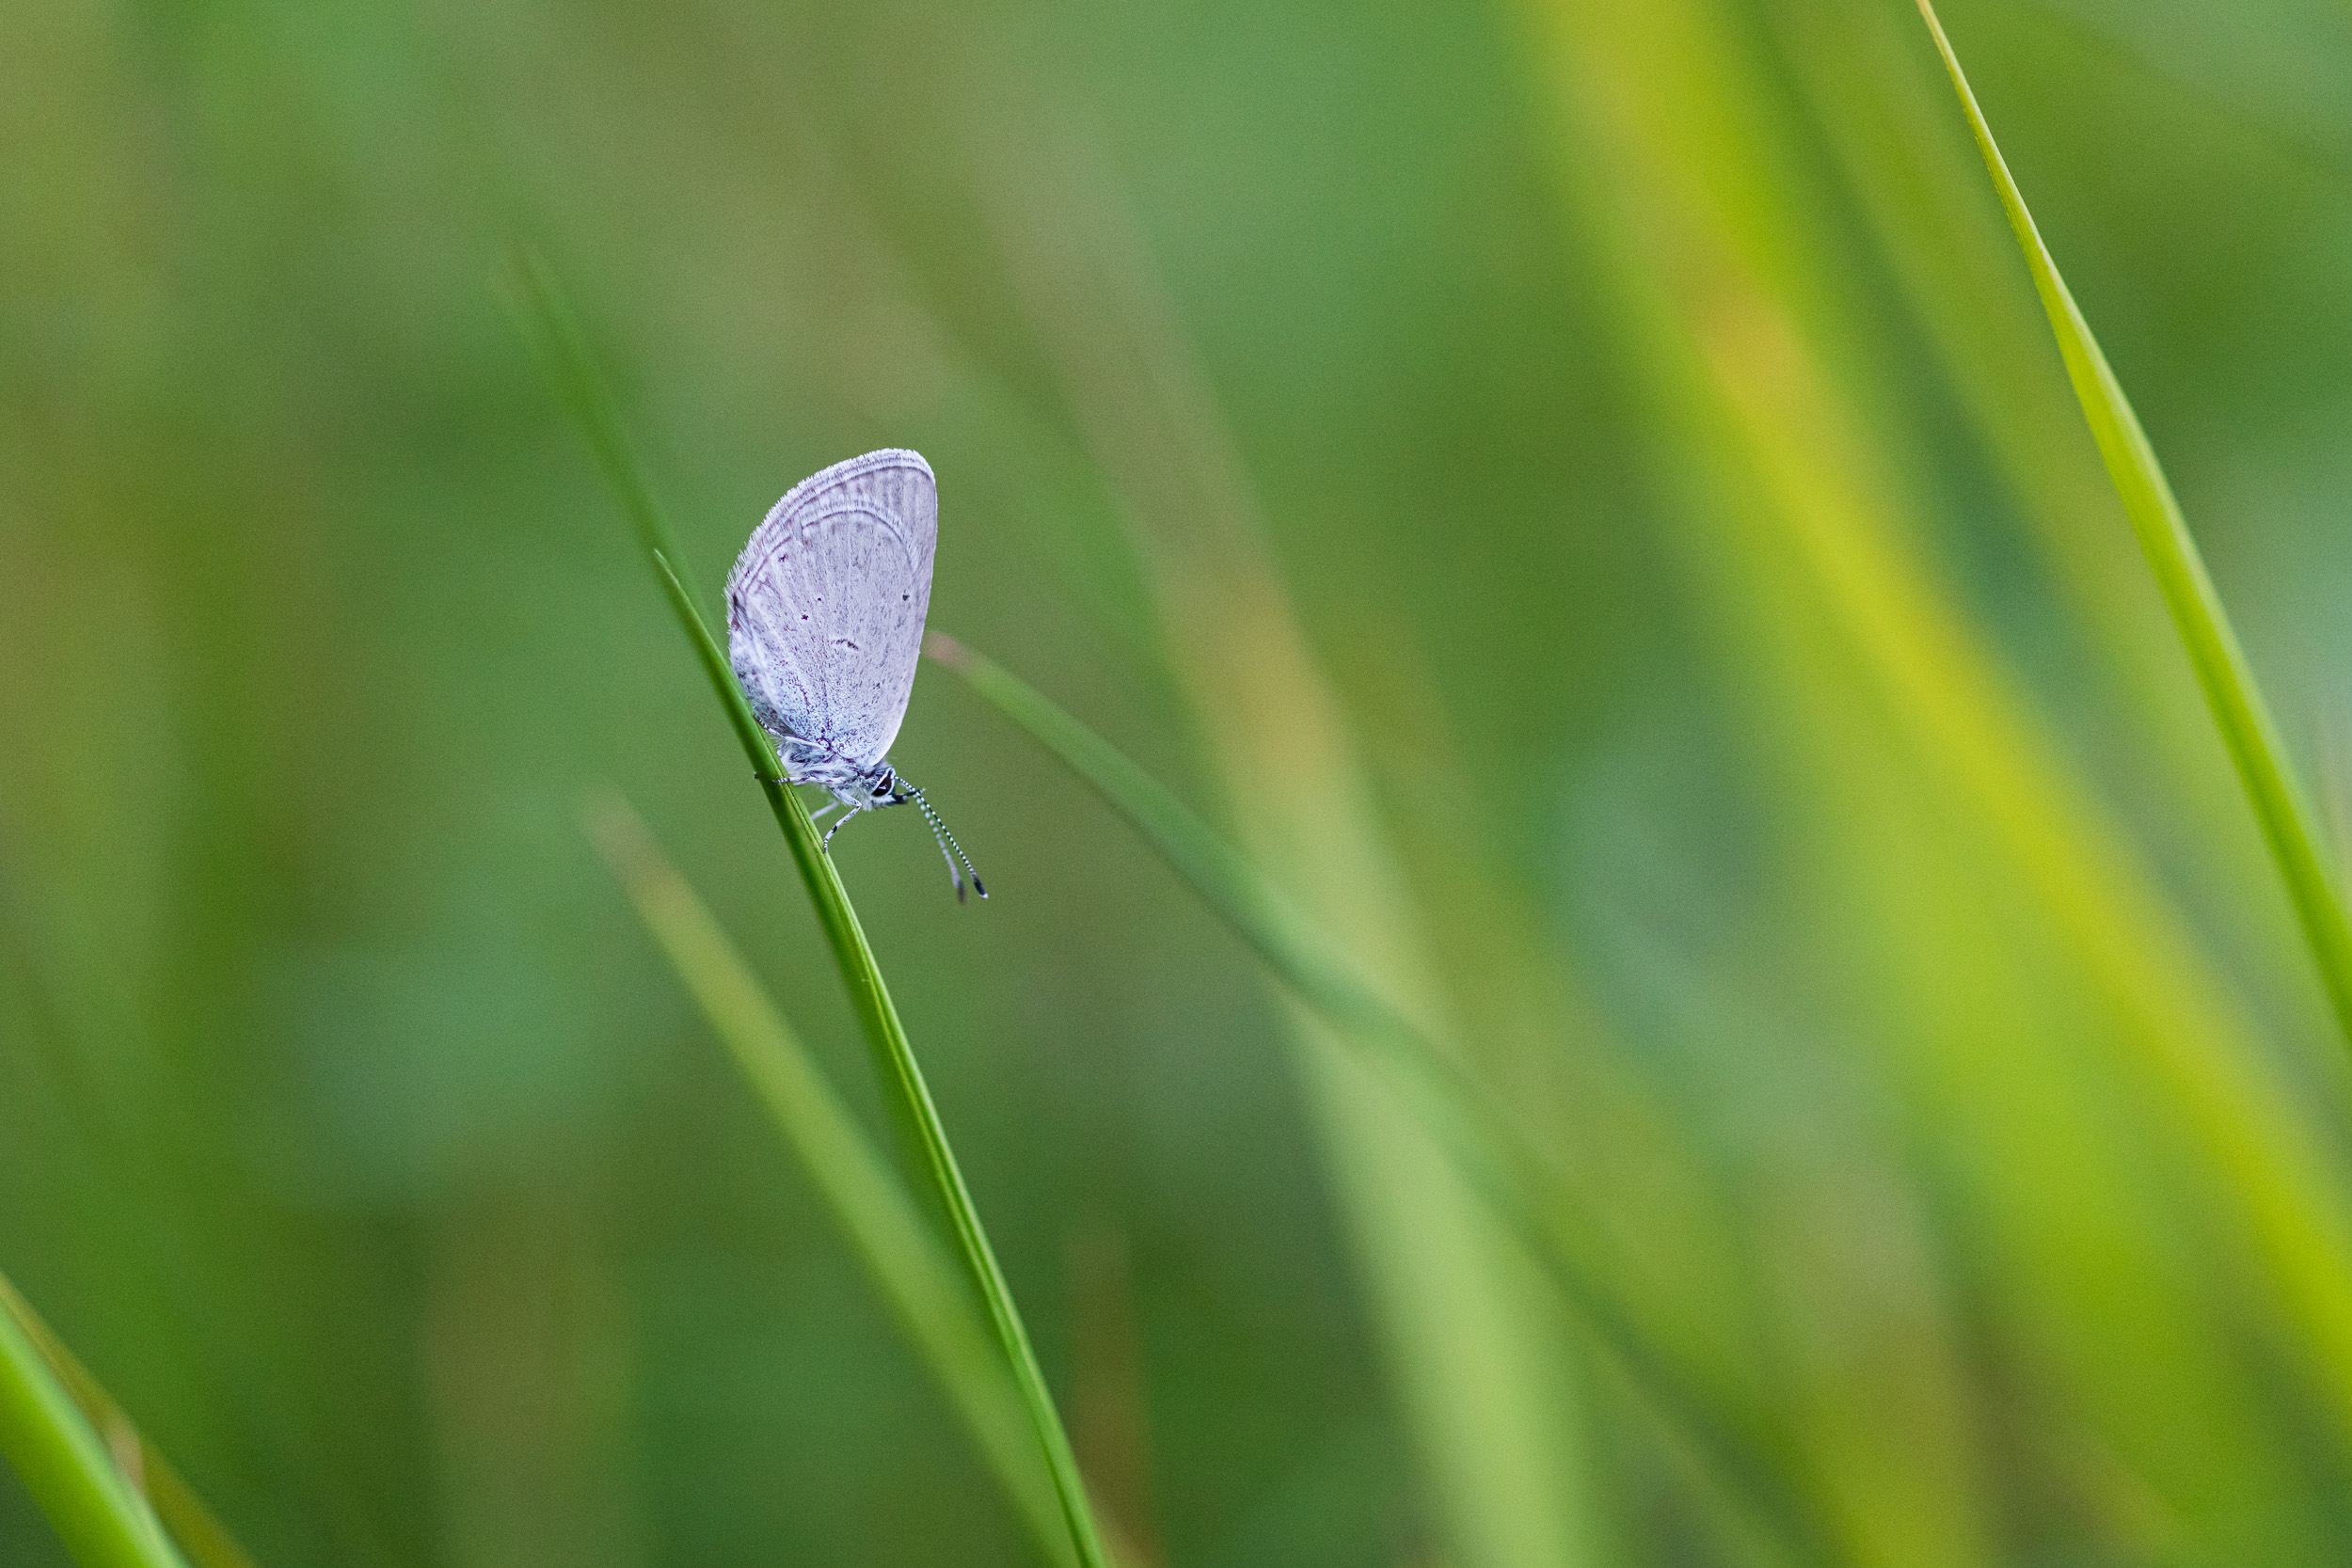 Small Blue, Devon  - Nikon D850, Zeiss 100mm f/2 at f/2.8, 1/160th second at ISO 2000